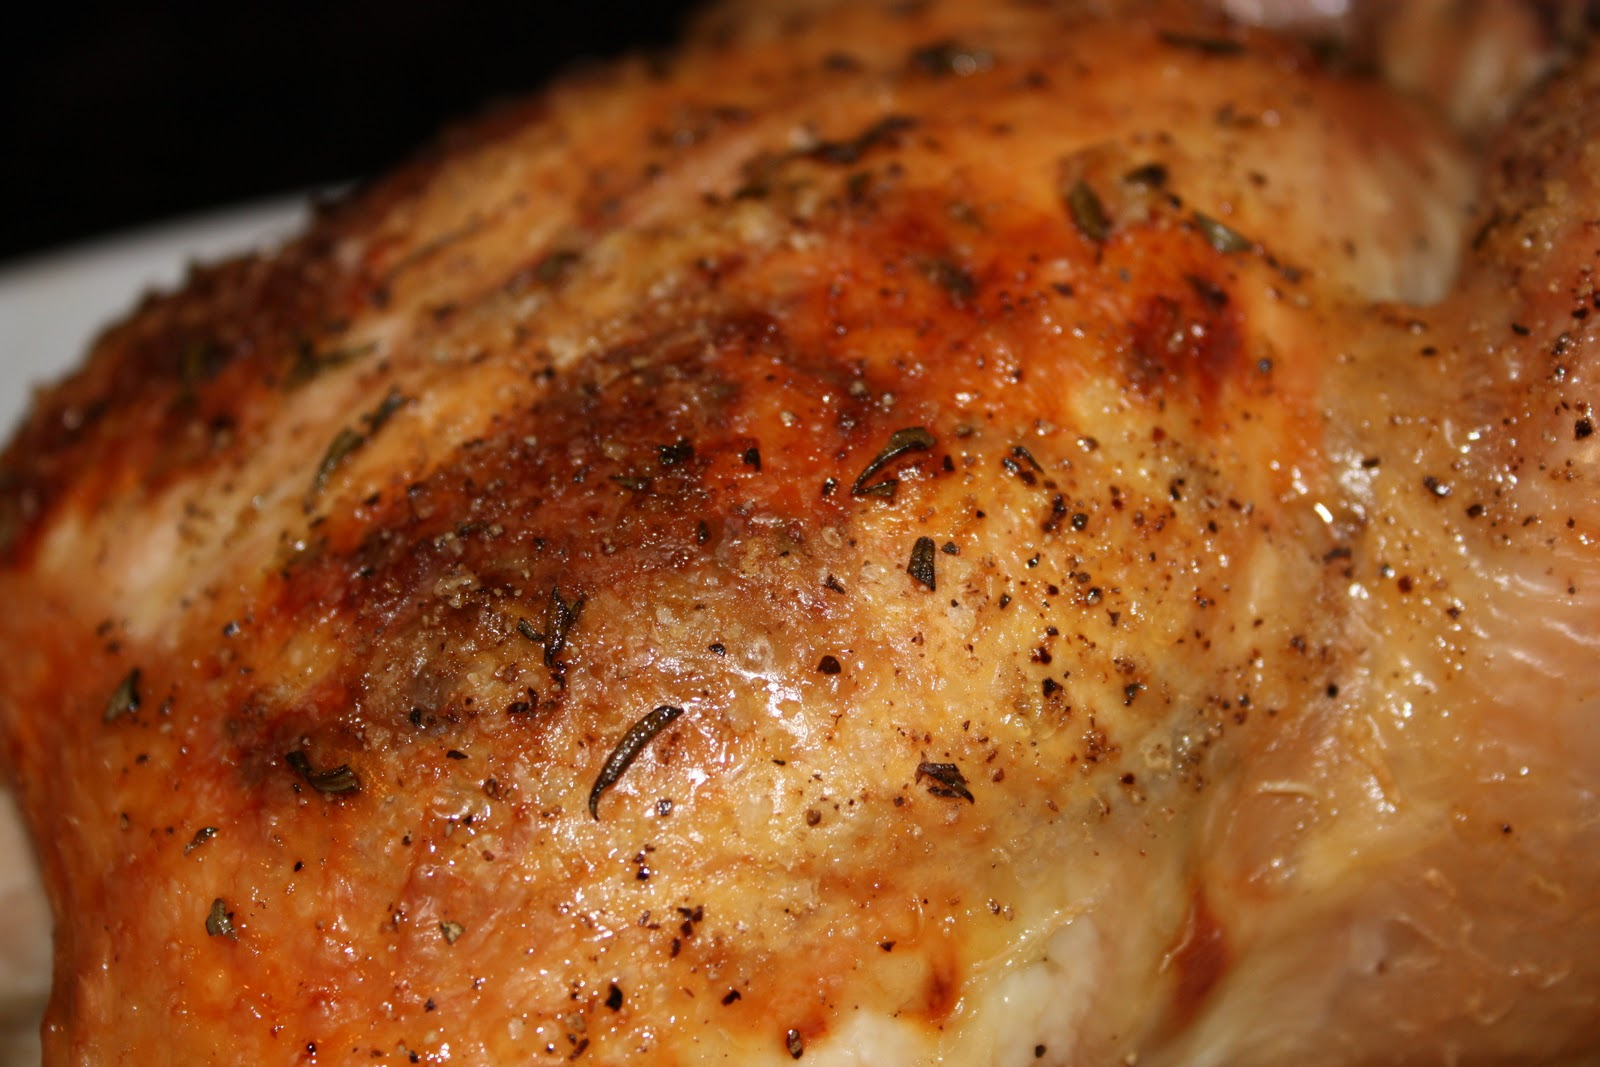 OH MY GOSH THIS CHICKEN IS SOOO GOOD! The skin is salty juicy and crispy and the chicken breast is perfectly tender not one bit dry and is bursting with ... & Rosemary Roasted Chicken with Vegetables - Lindsey McClave